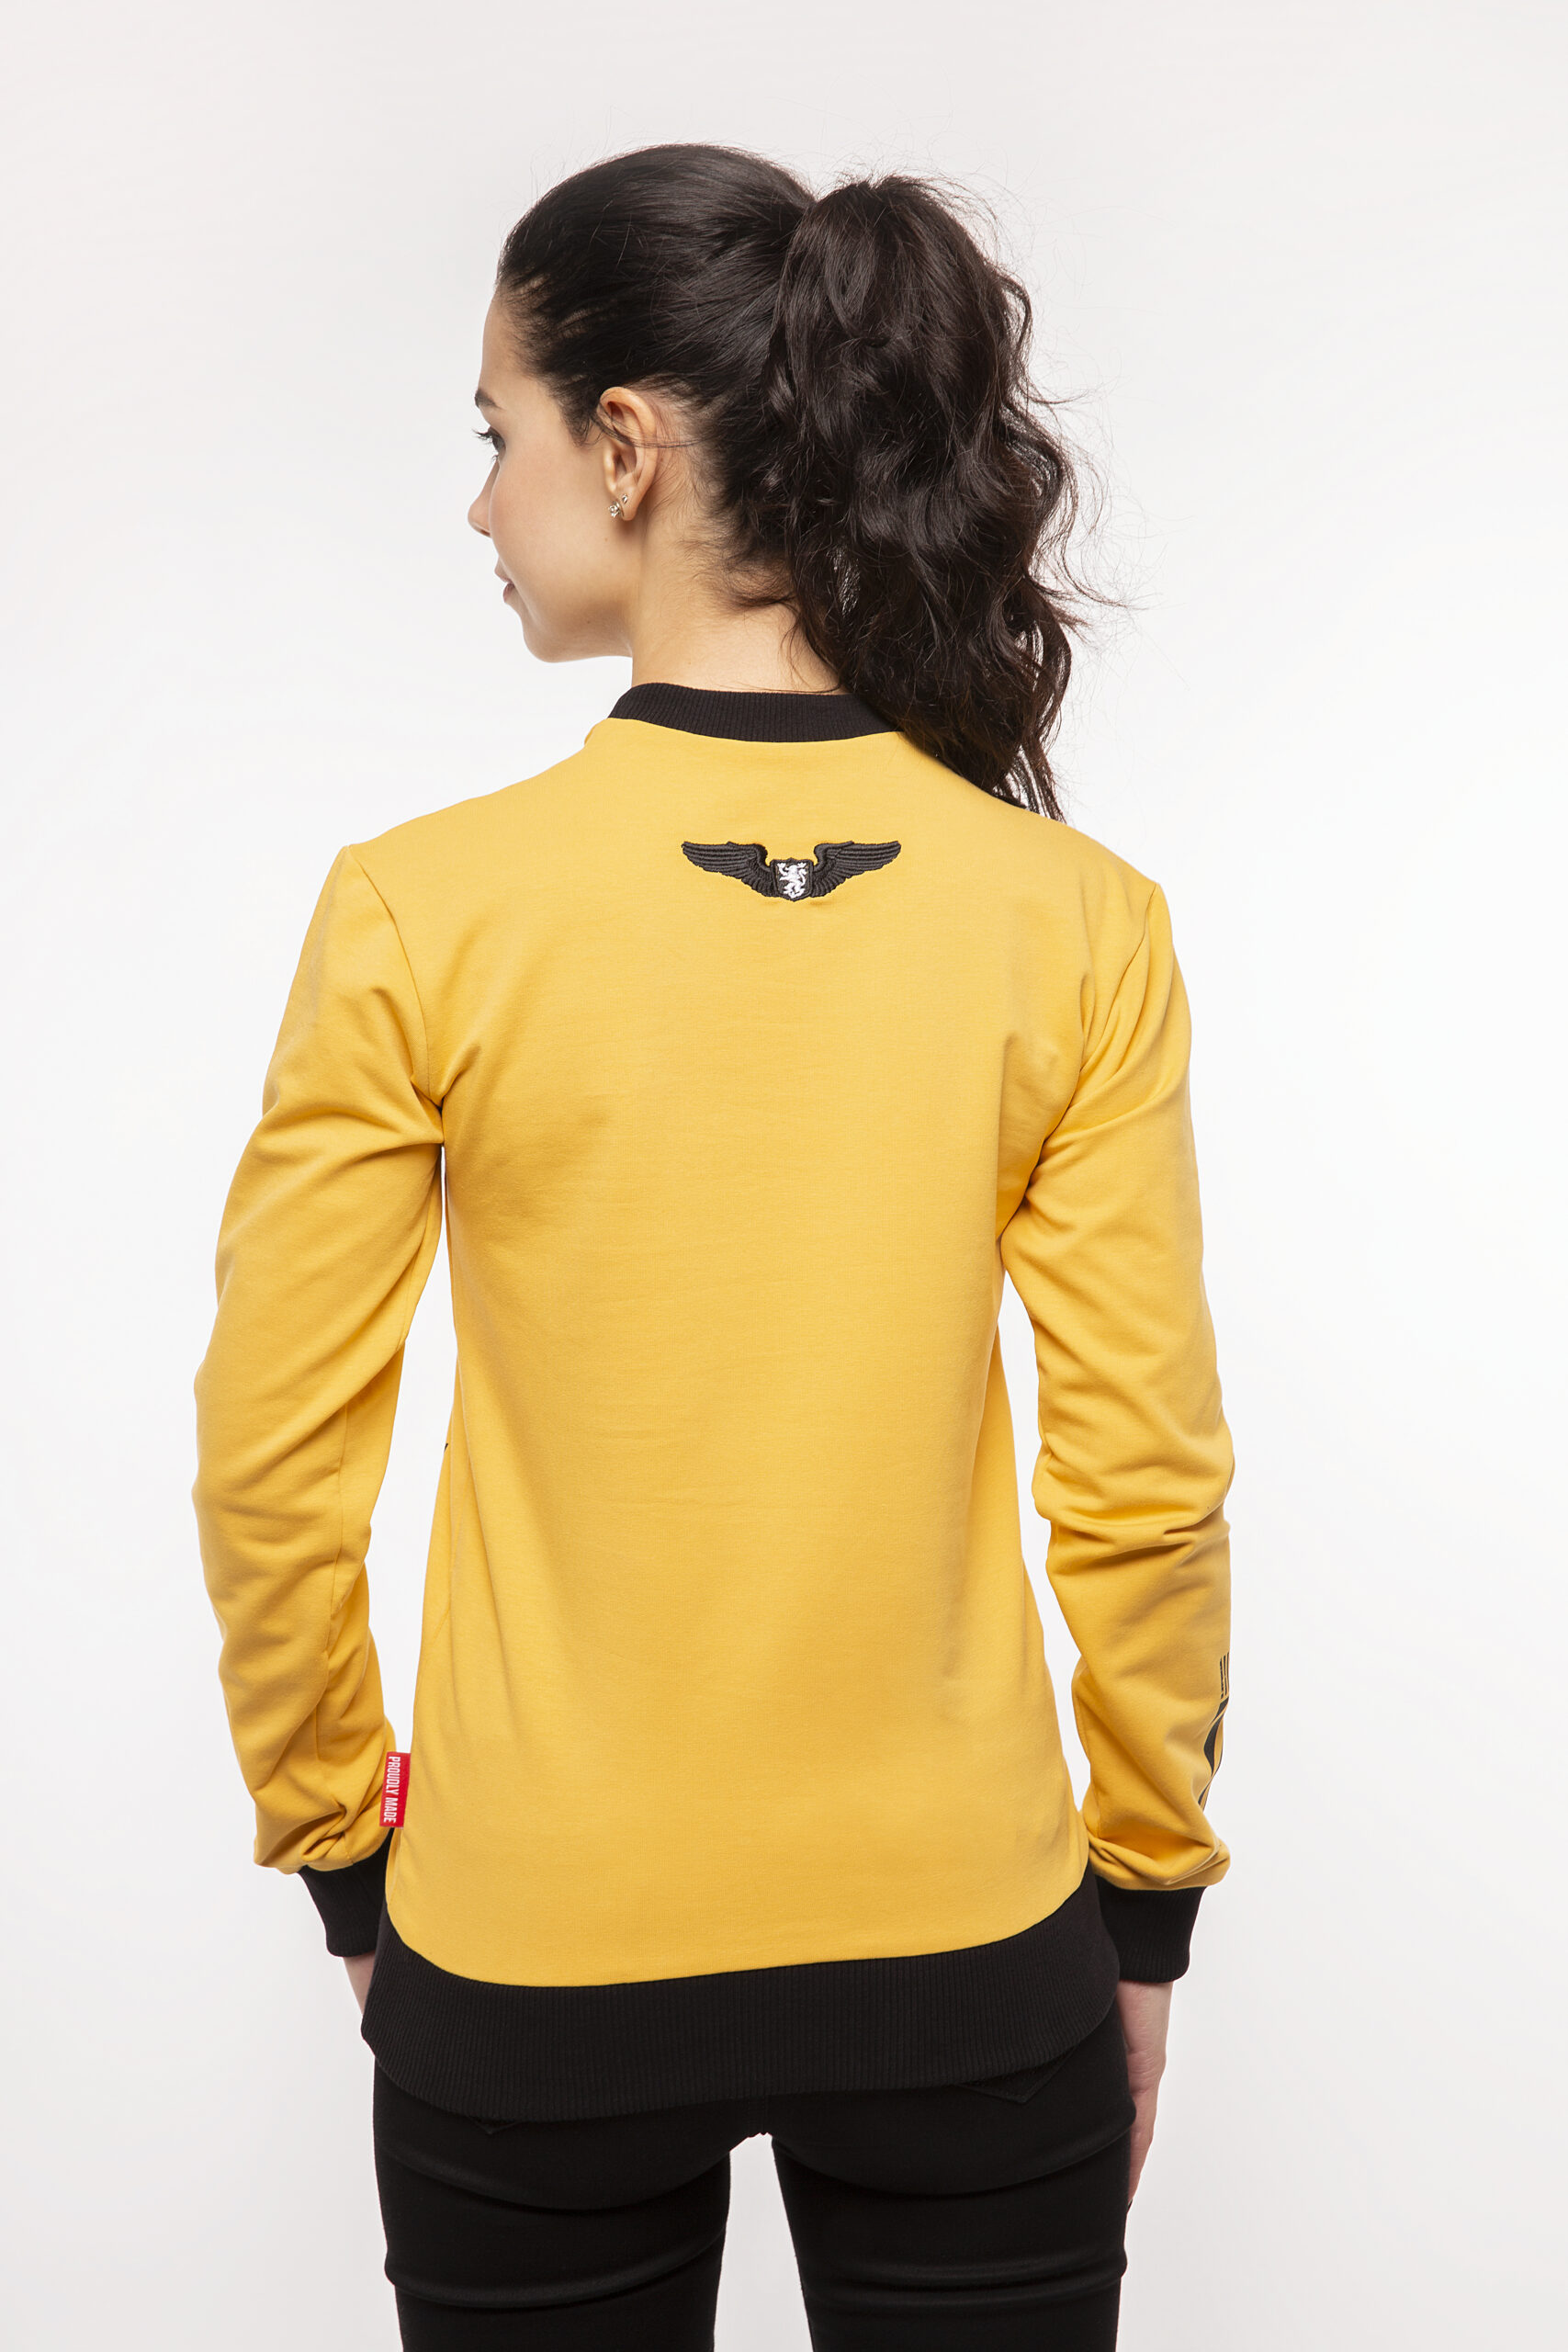 Women's Long Sleeve Have A Nice Fligh. Color yellow.  Technique of prints applied: silkscreen printing.